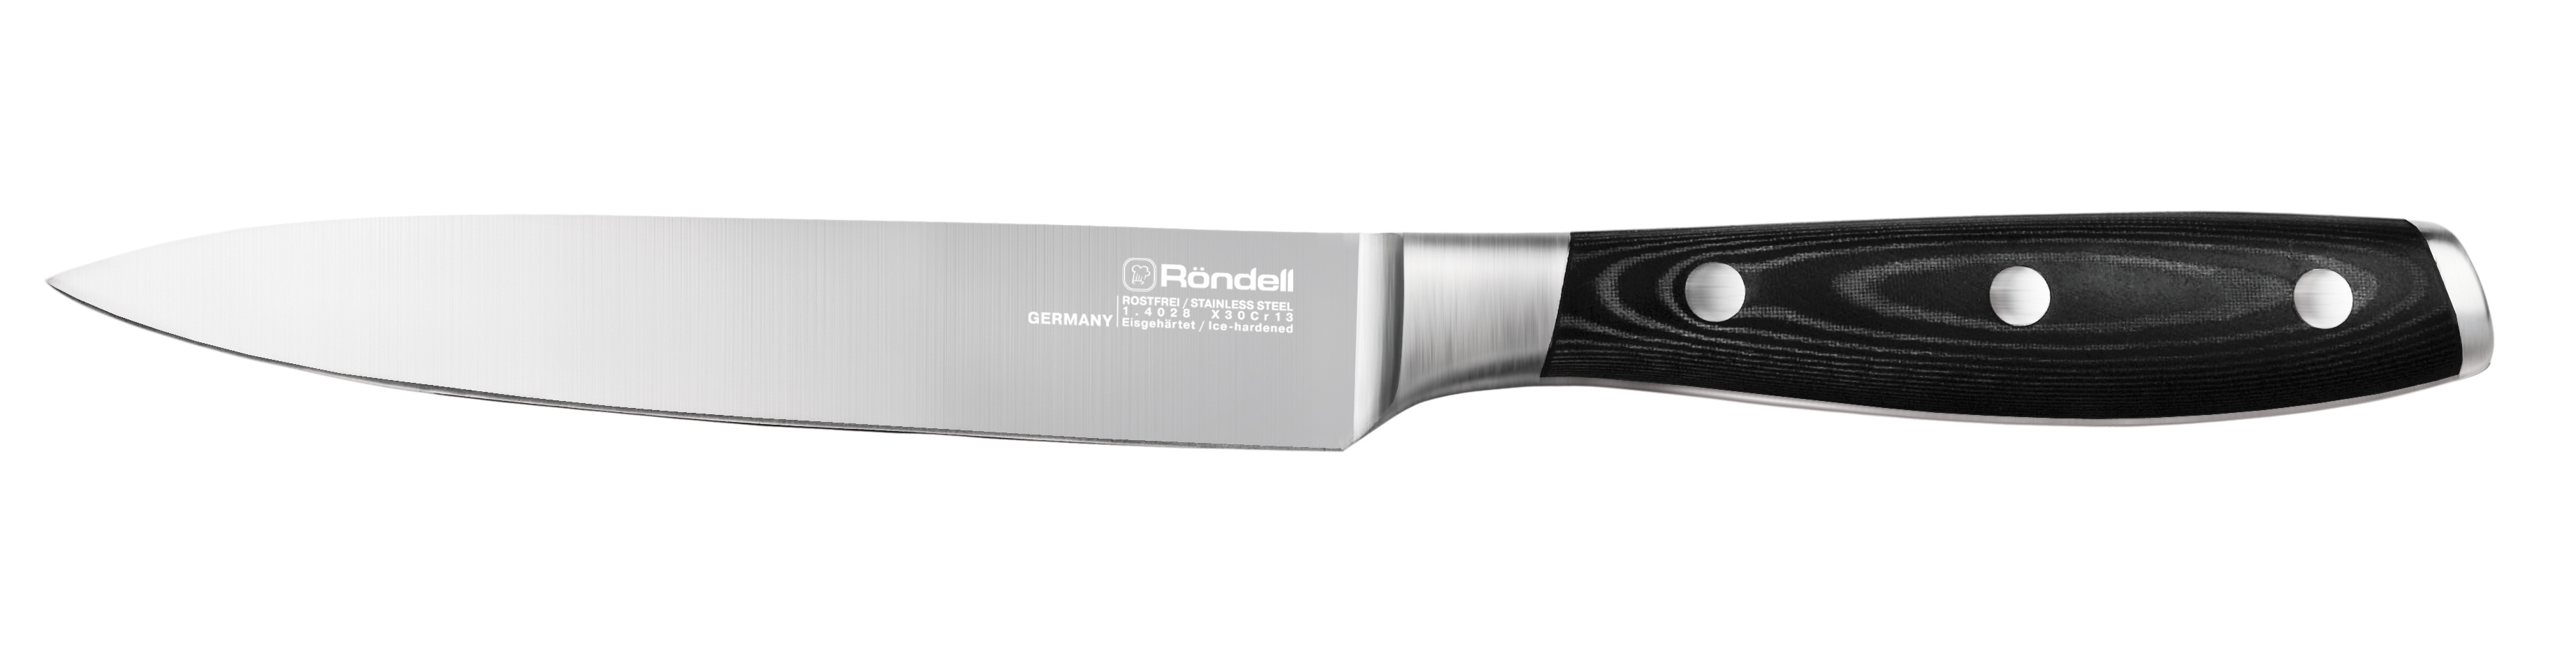 Нож Rondell Rd-329